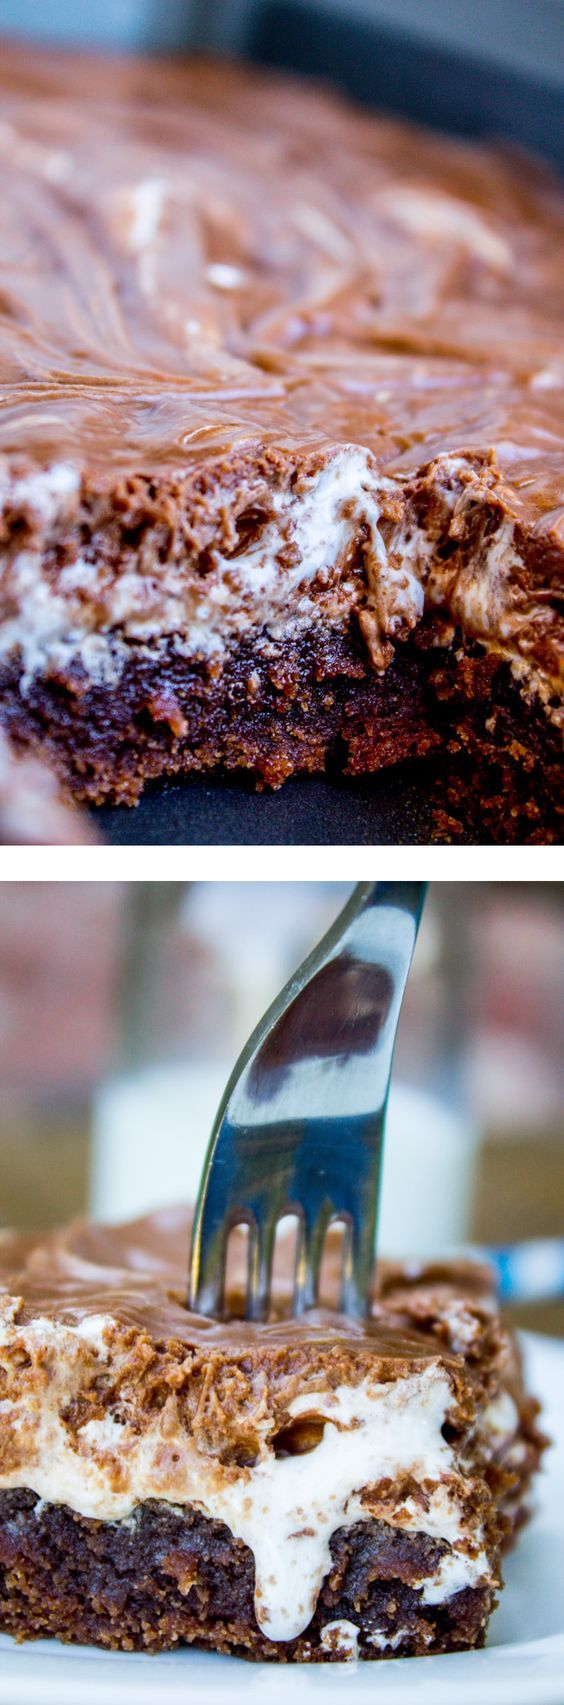 A classic recipe for Mississippi Mud Cake! From The Food Charlatan. It's a moist chocolate sheet cake with marshmallow creme and chocolate frosting on top.